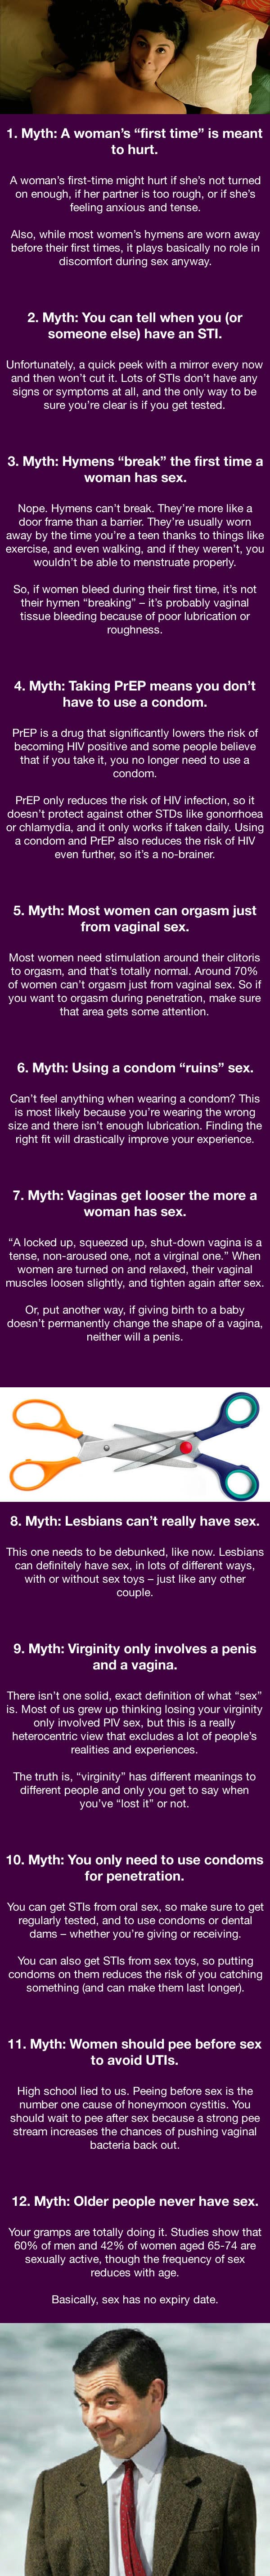 12 myths about sex, infographic